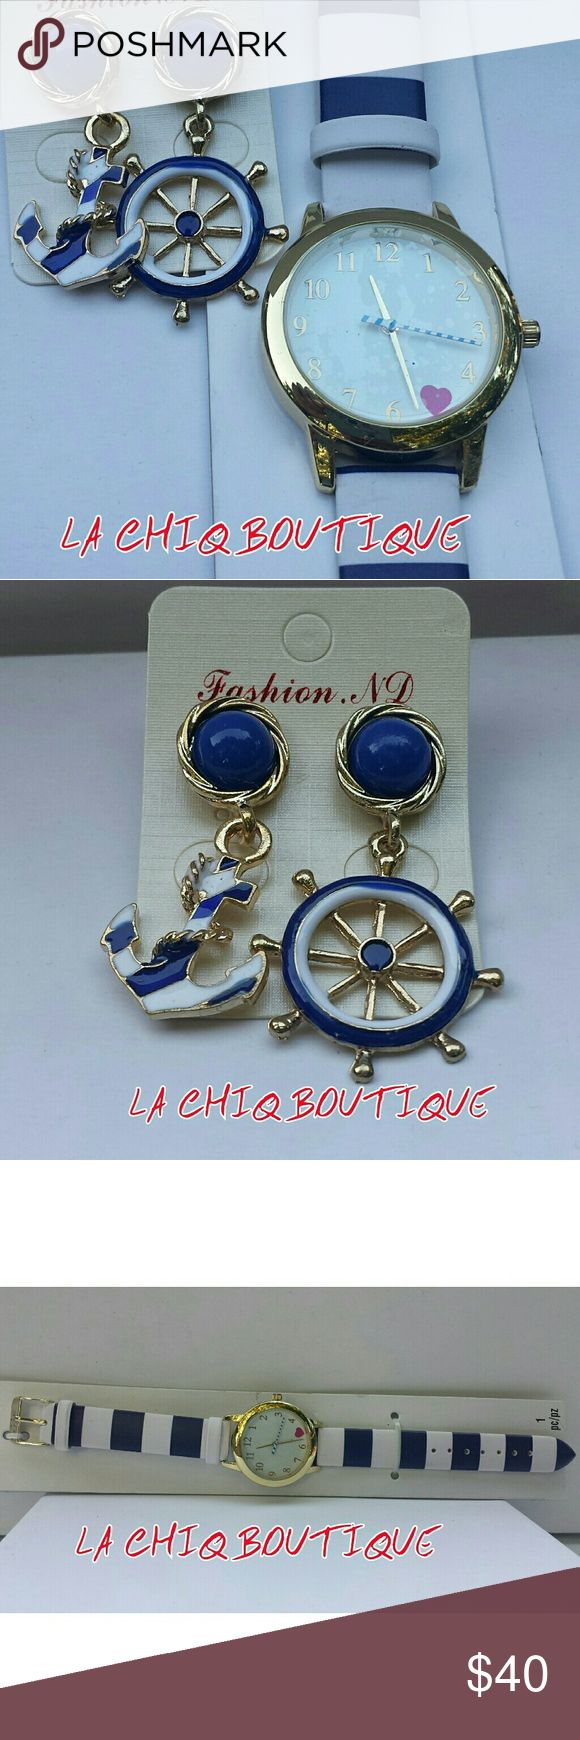 Anchor Earrings And Watch Set Boutique